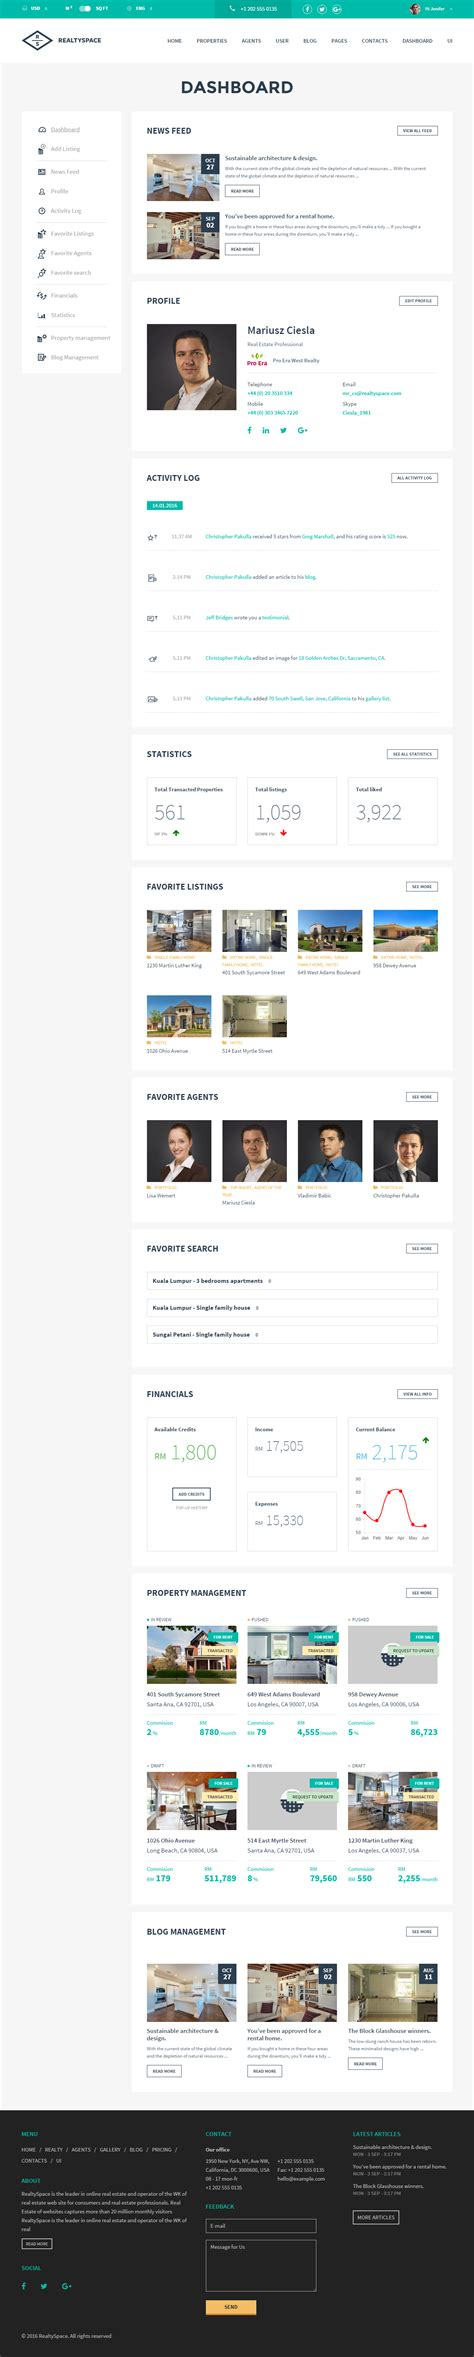 Realtyspace V2 2 Real Estate Html5 Template Dashboard Included realtyspace v2 1 2 real estate html5 template